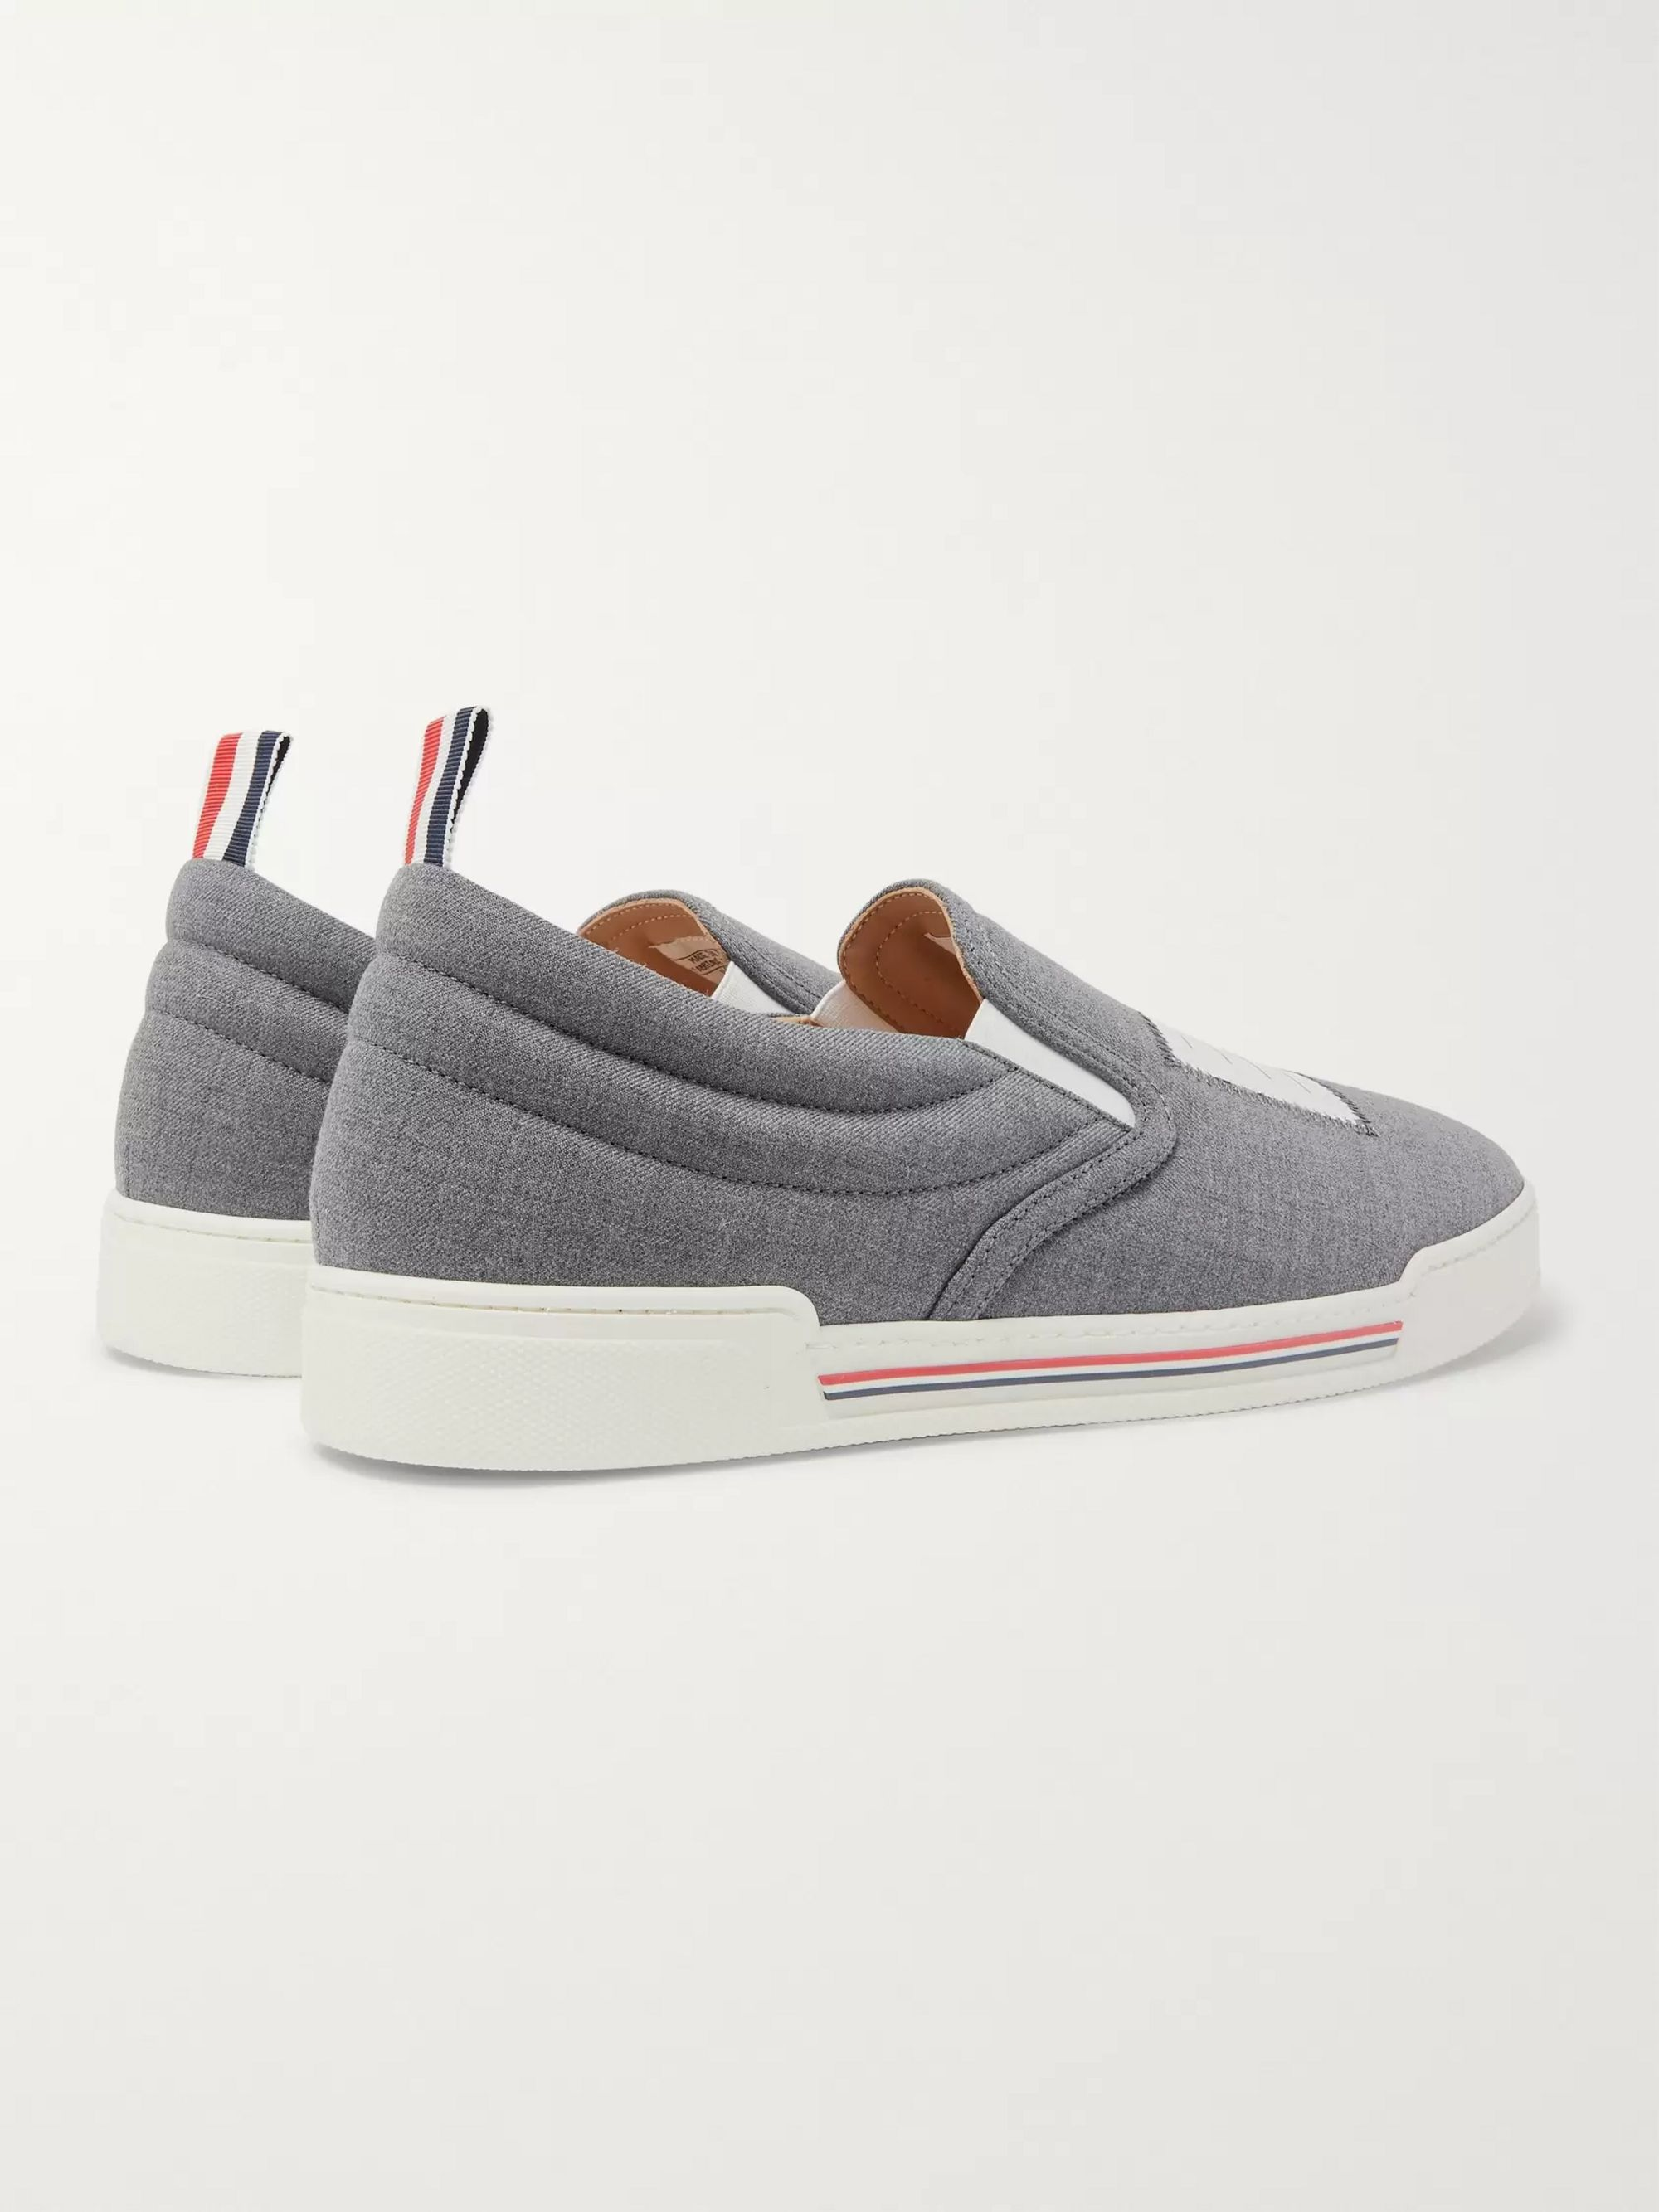 Thom Browne Logo-Appliquéd Wool Slip-On Sneakers